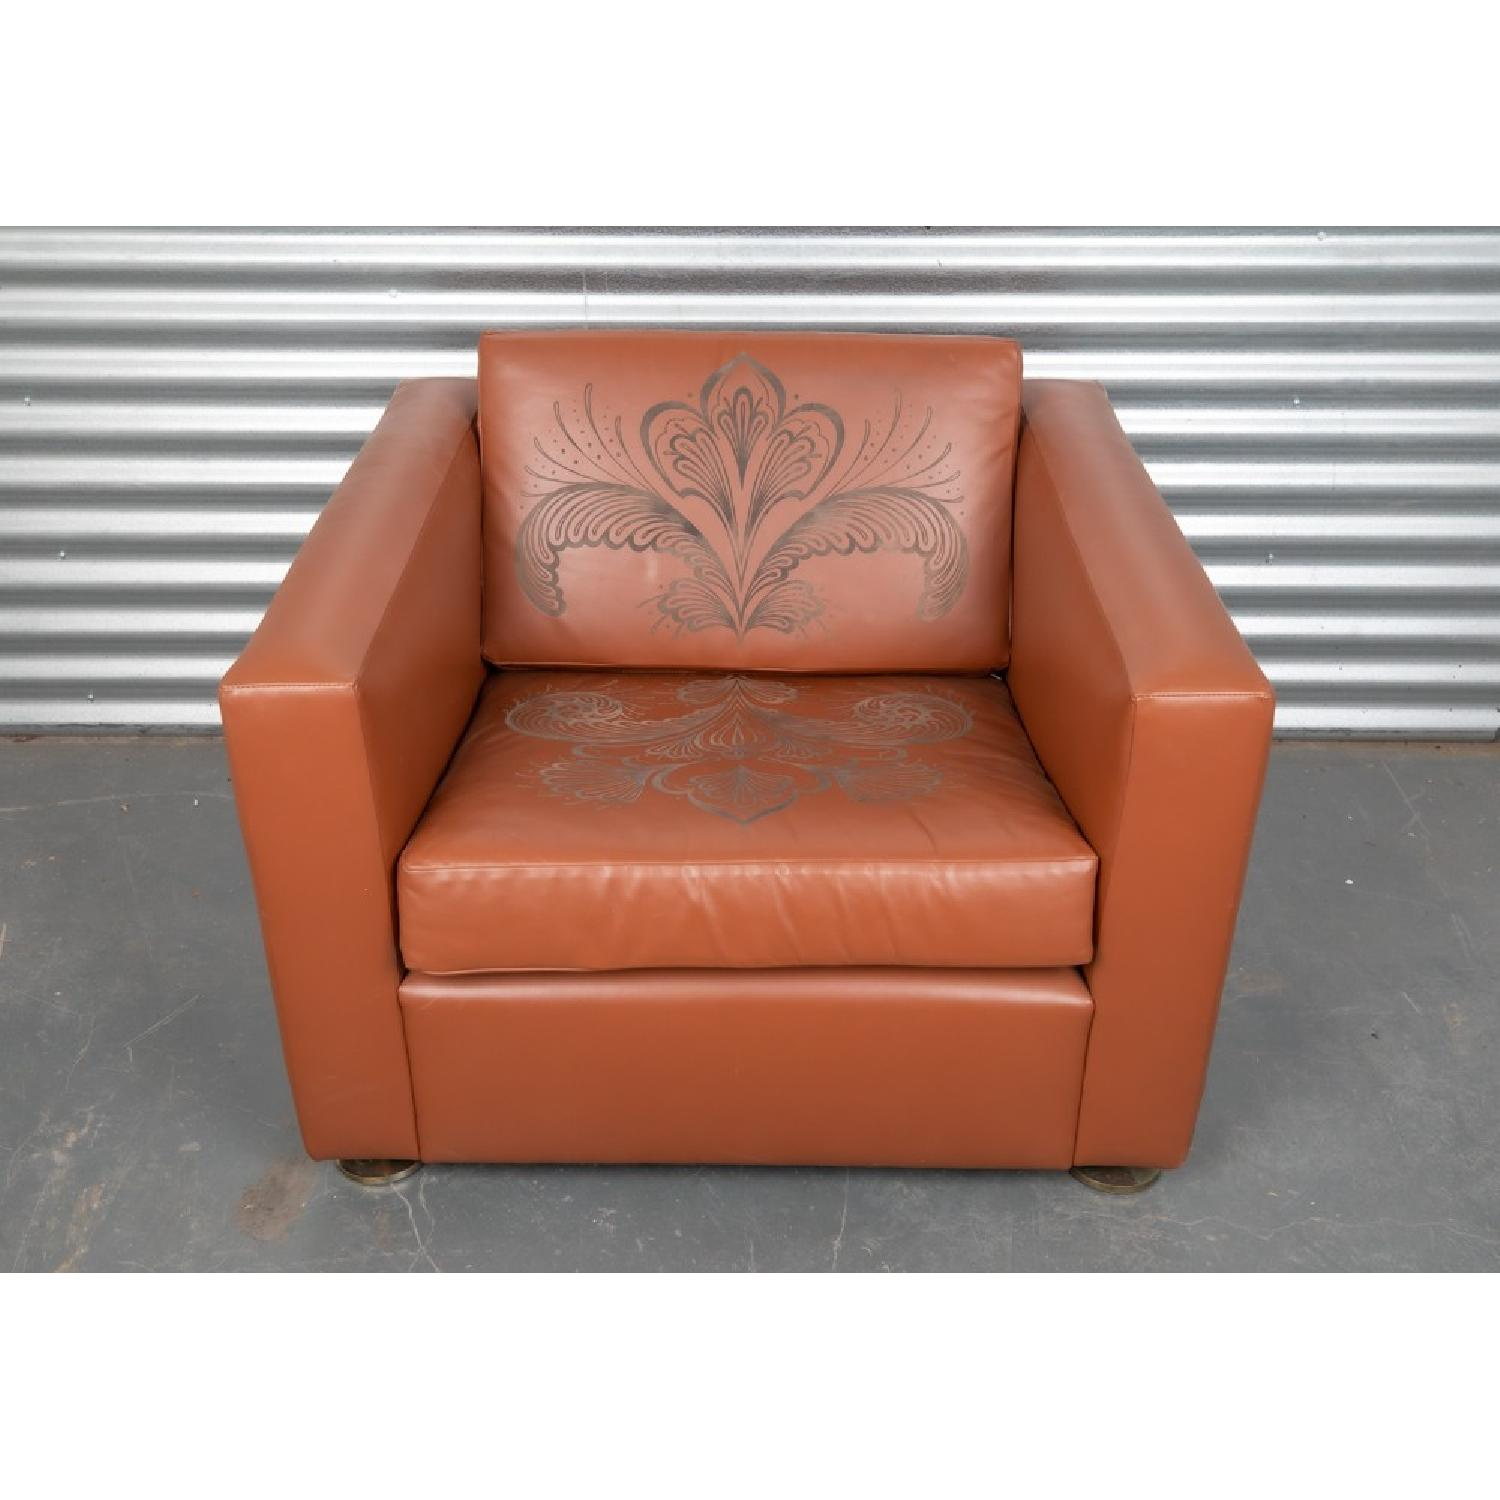 ABC Carpet and Home Engraved Leather Accent Chairs - image-6